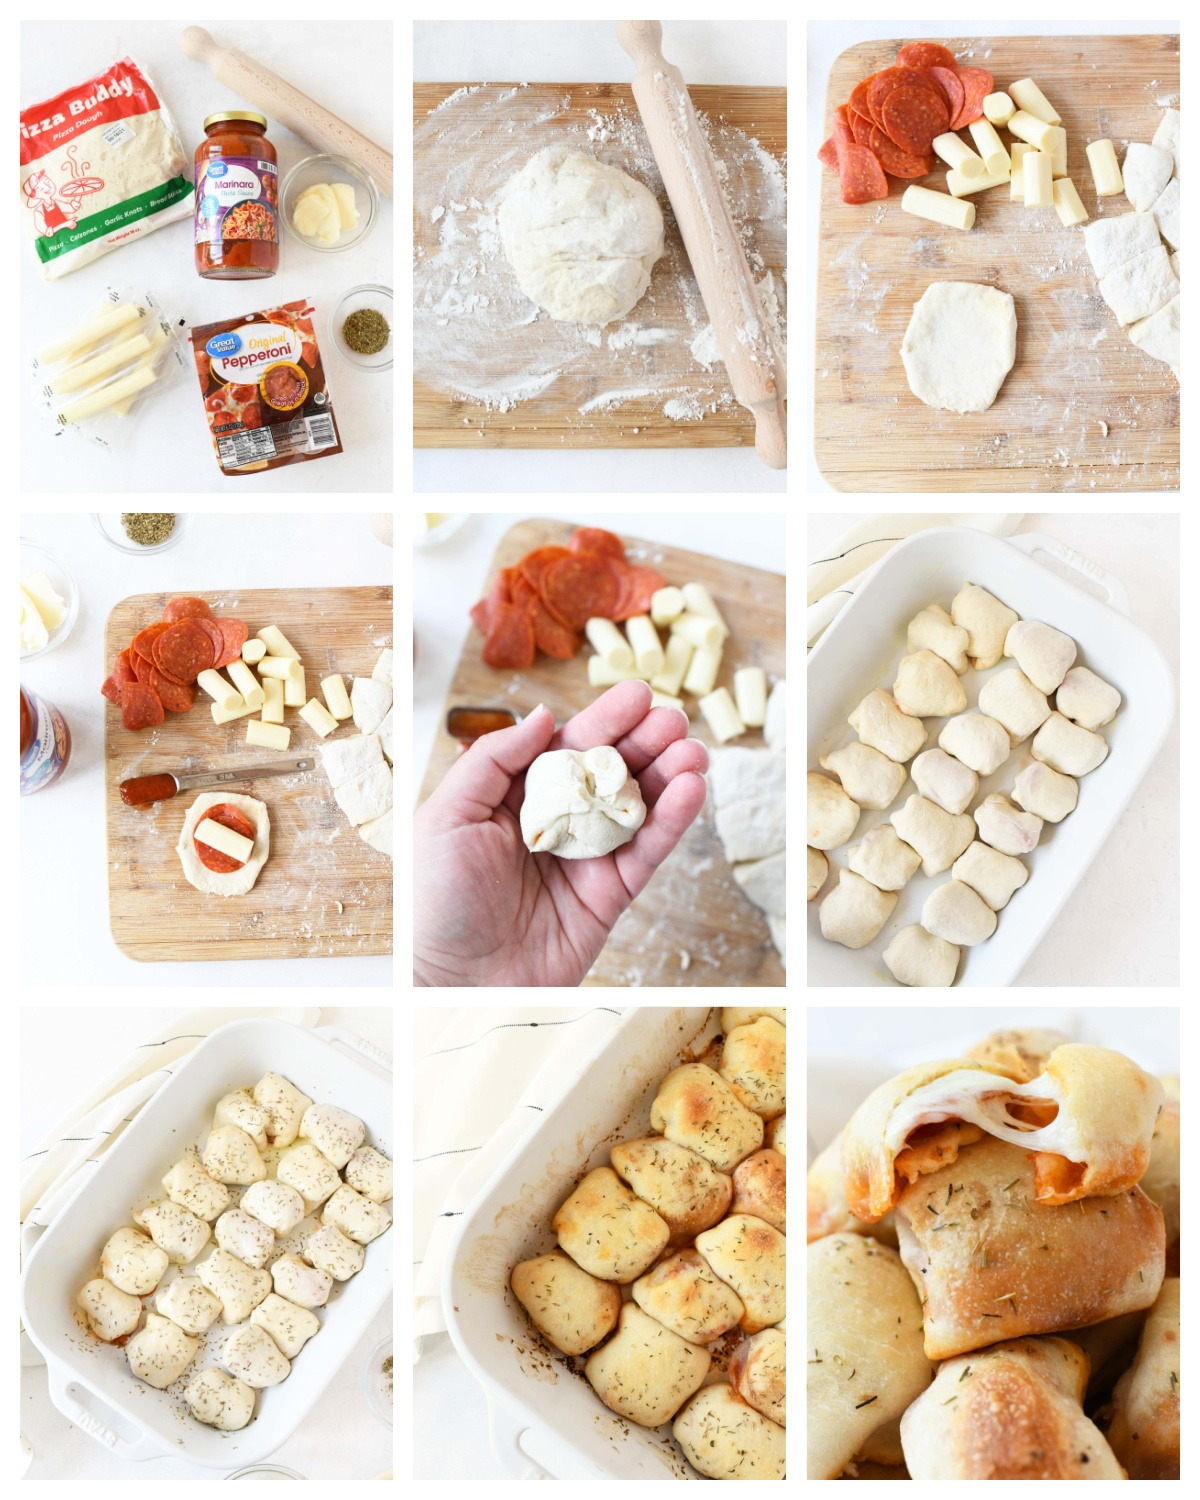 A nine image collage of the steps to make pepperoni pizza rolls.